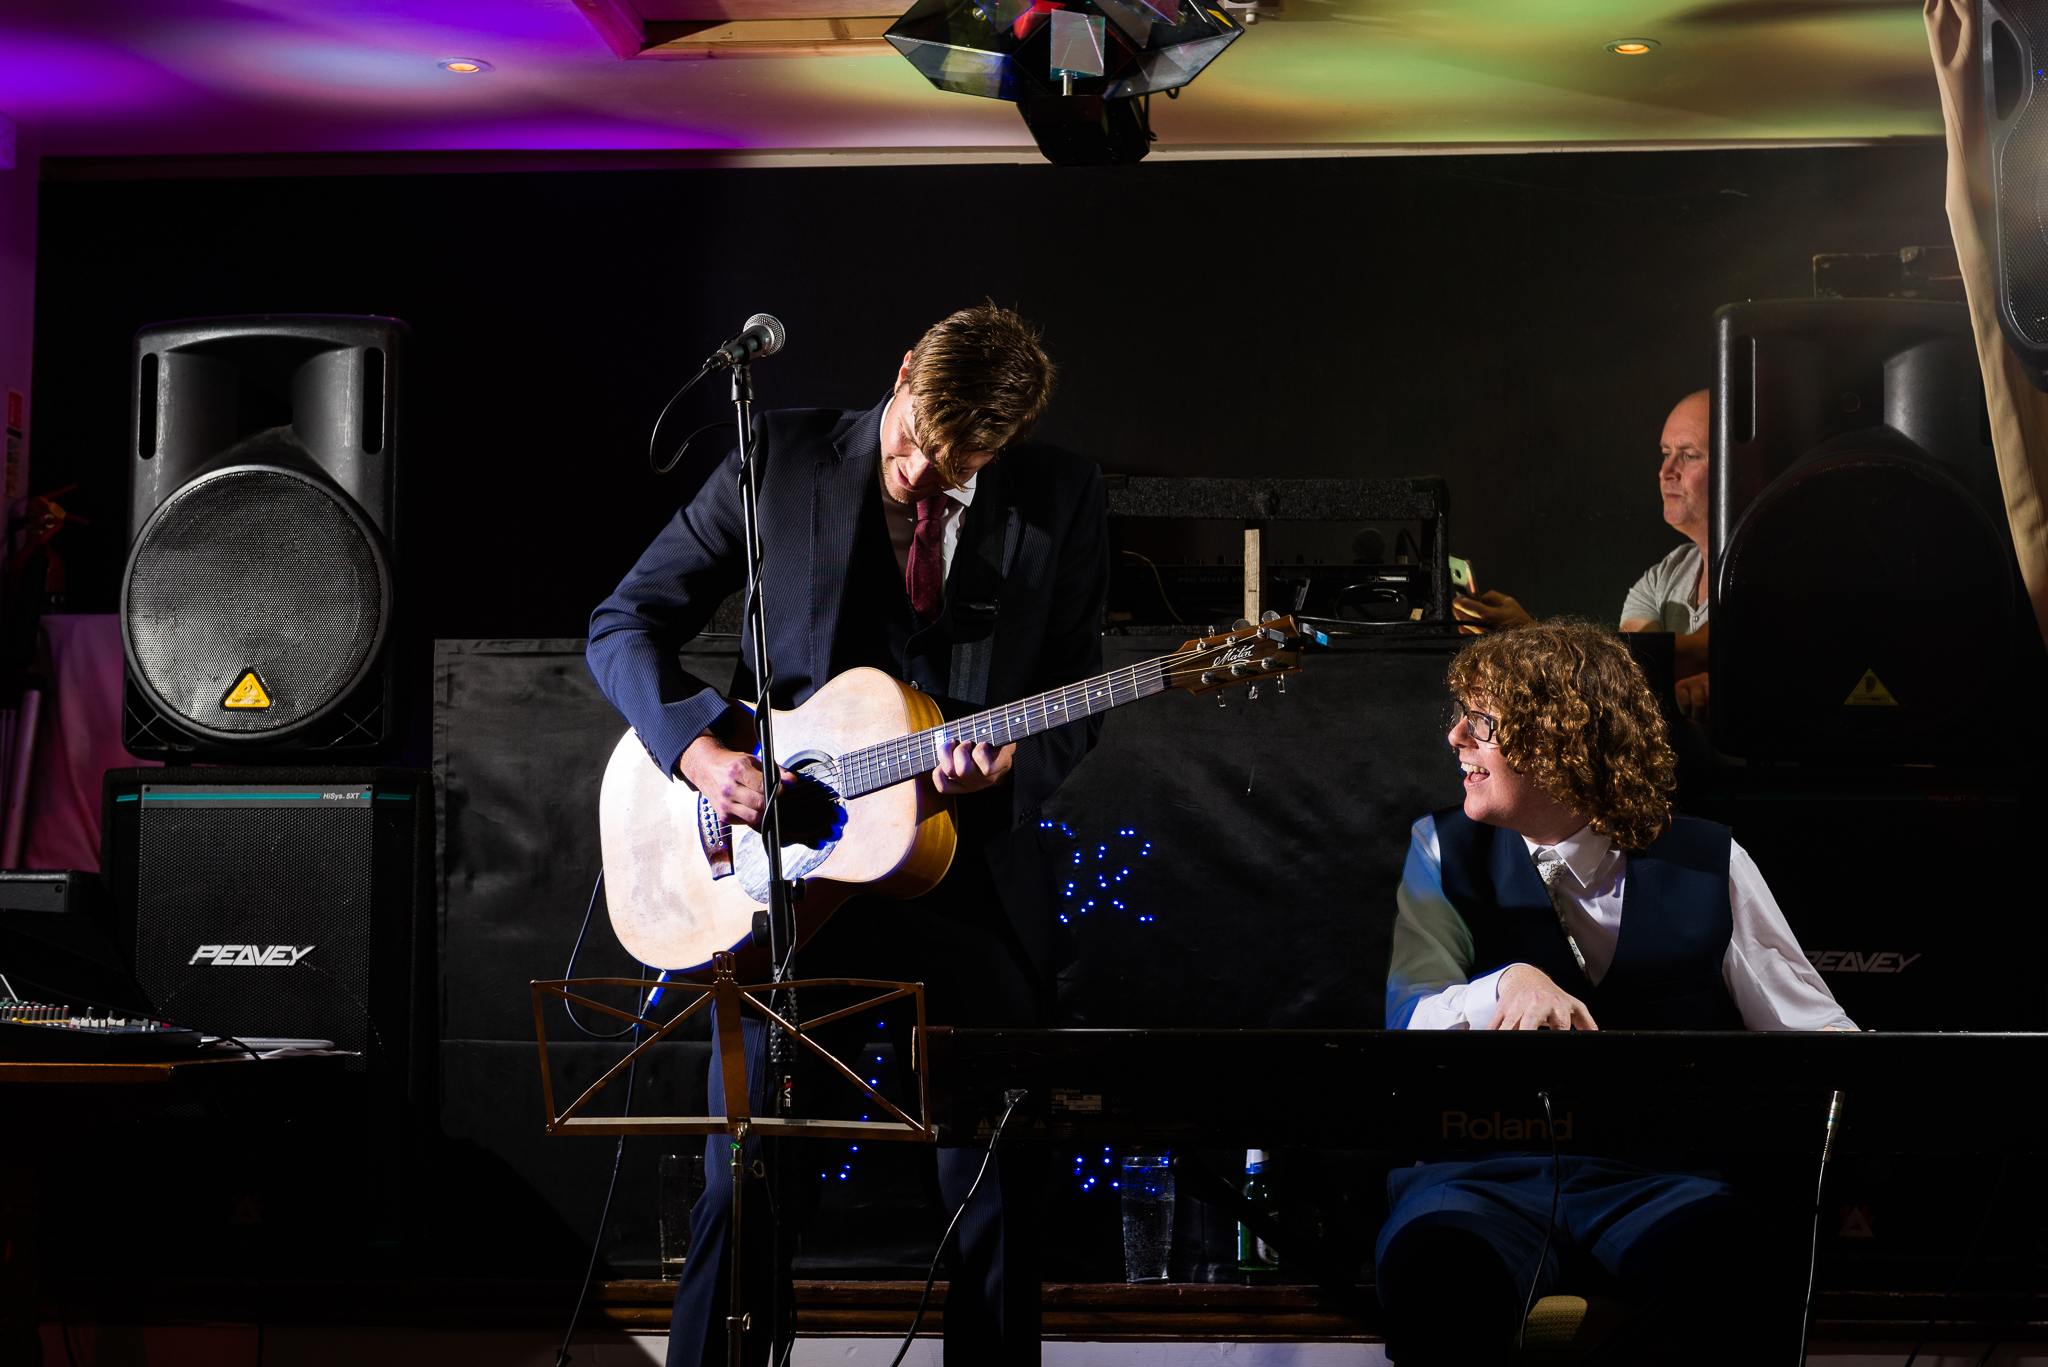 Relaxed Summer Wedding at The Manor, Cheadle Guitarist Musicians Vinyl-56.jpg